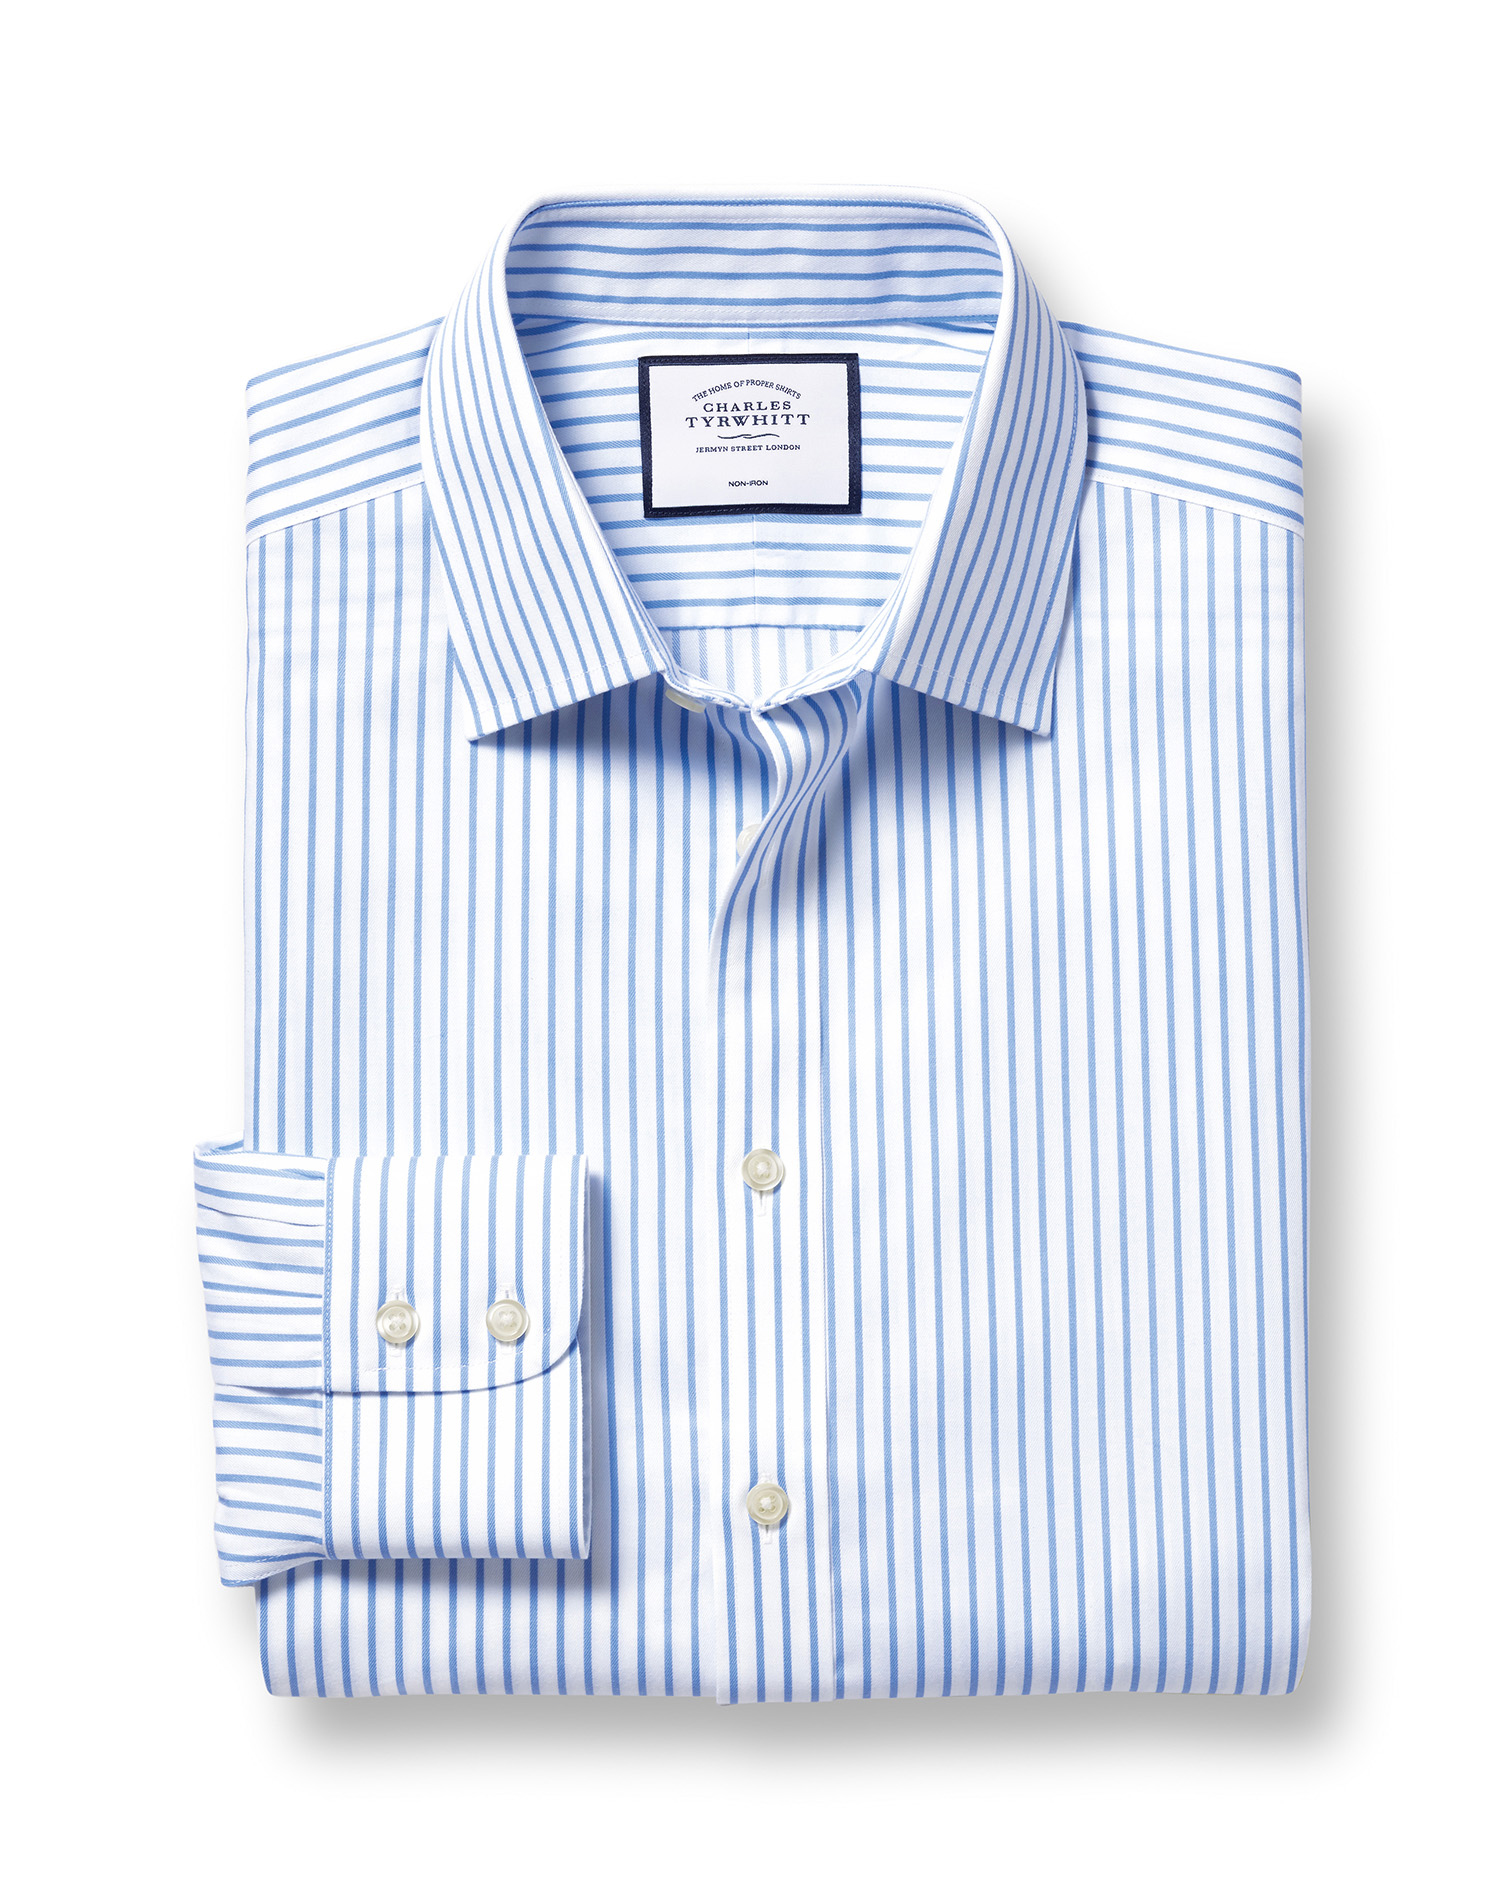 Extra Slim Fit Non-Iron Sky Blue Stripe Twill Cotton Formal Shirt Single Cuff Size 16/33 by Charles